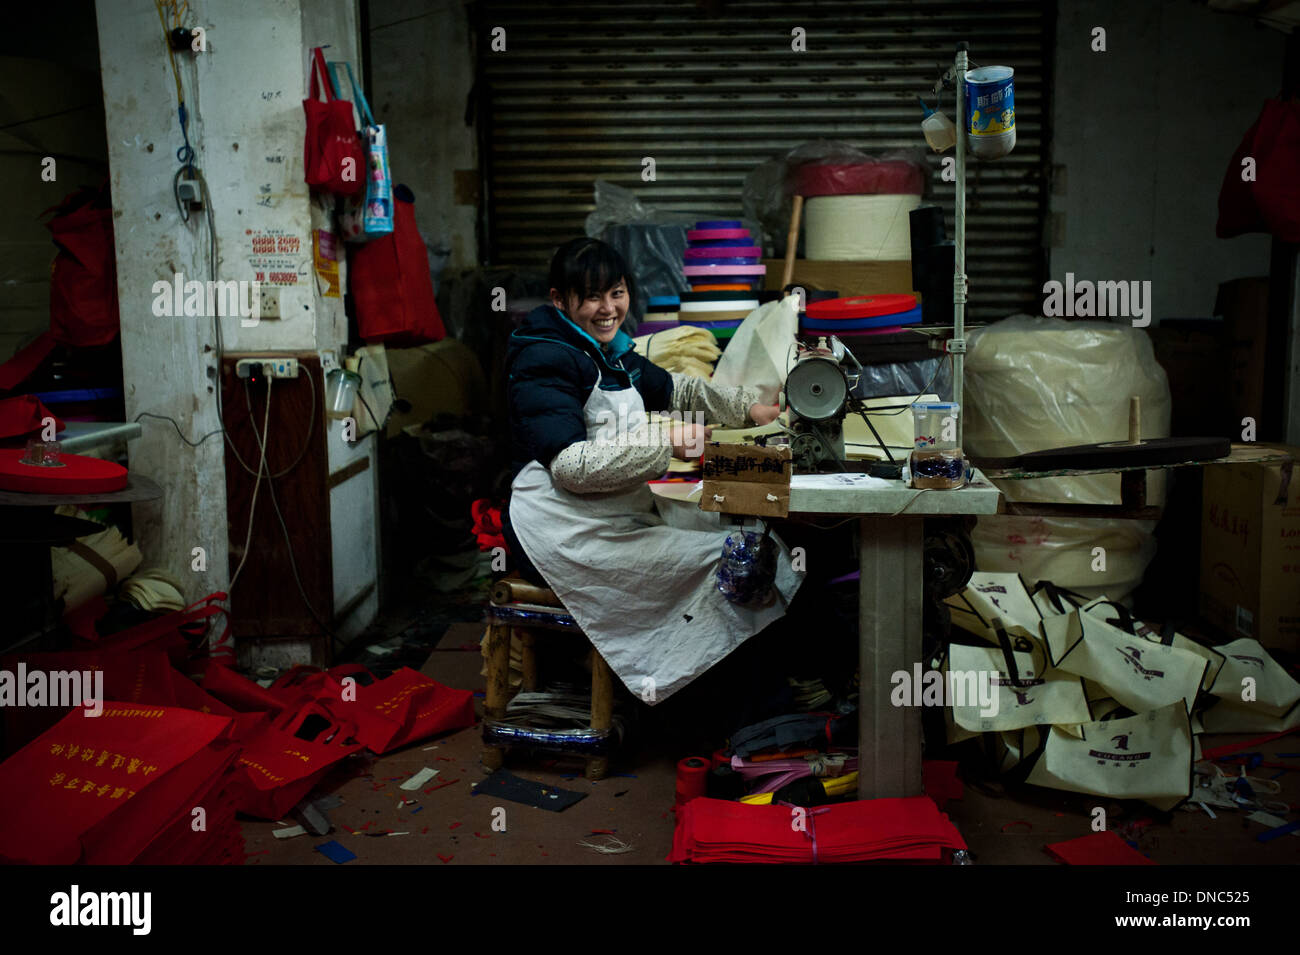 Chongqing, China - 31 December 2010: a woman smiles at the camera while working on a sewing machine in a messy textile factory - Stock Image